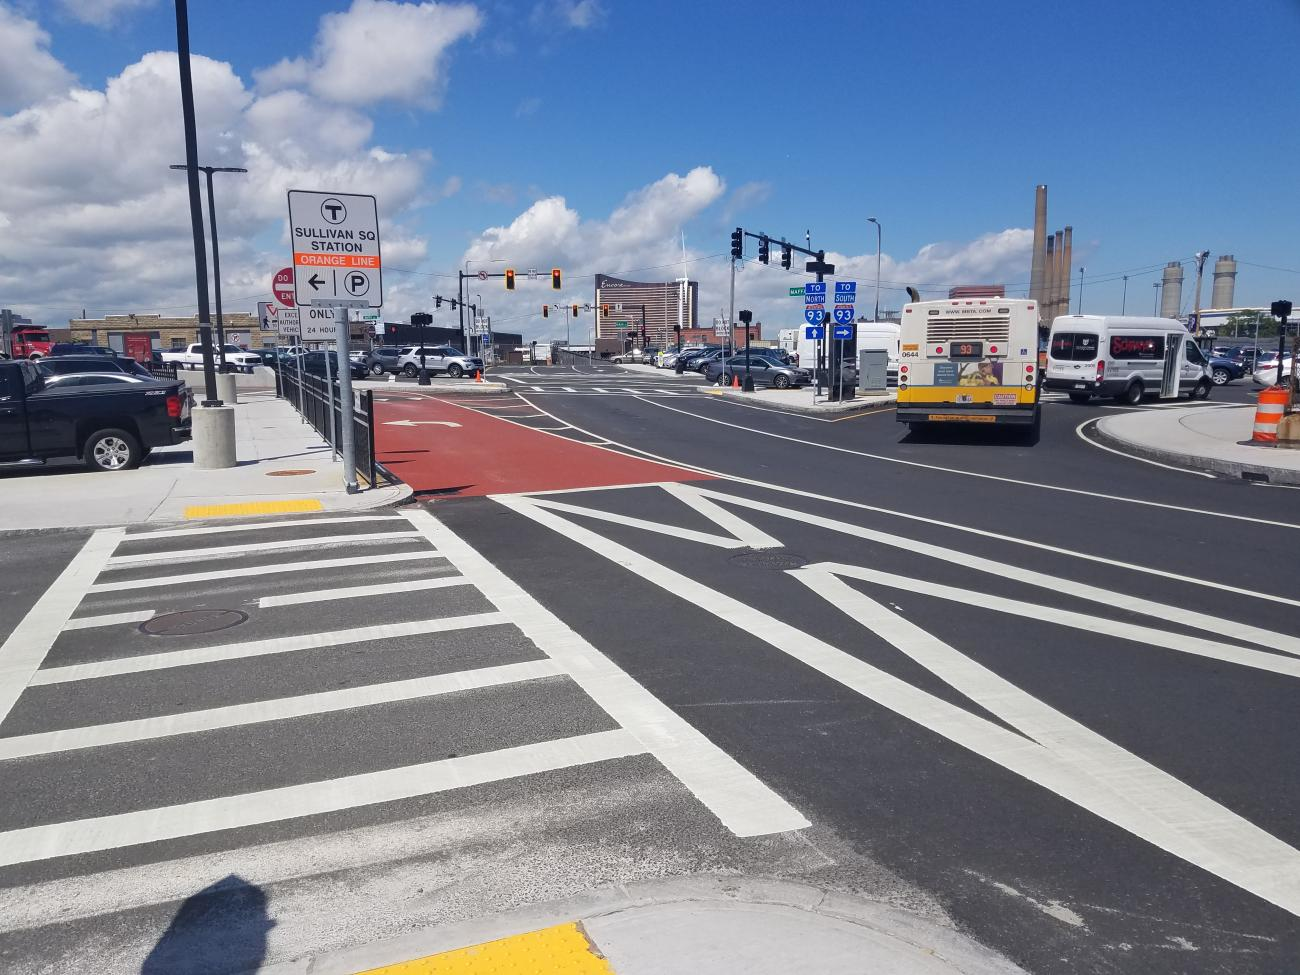 Sullivan Square parking lot and roadway work complete